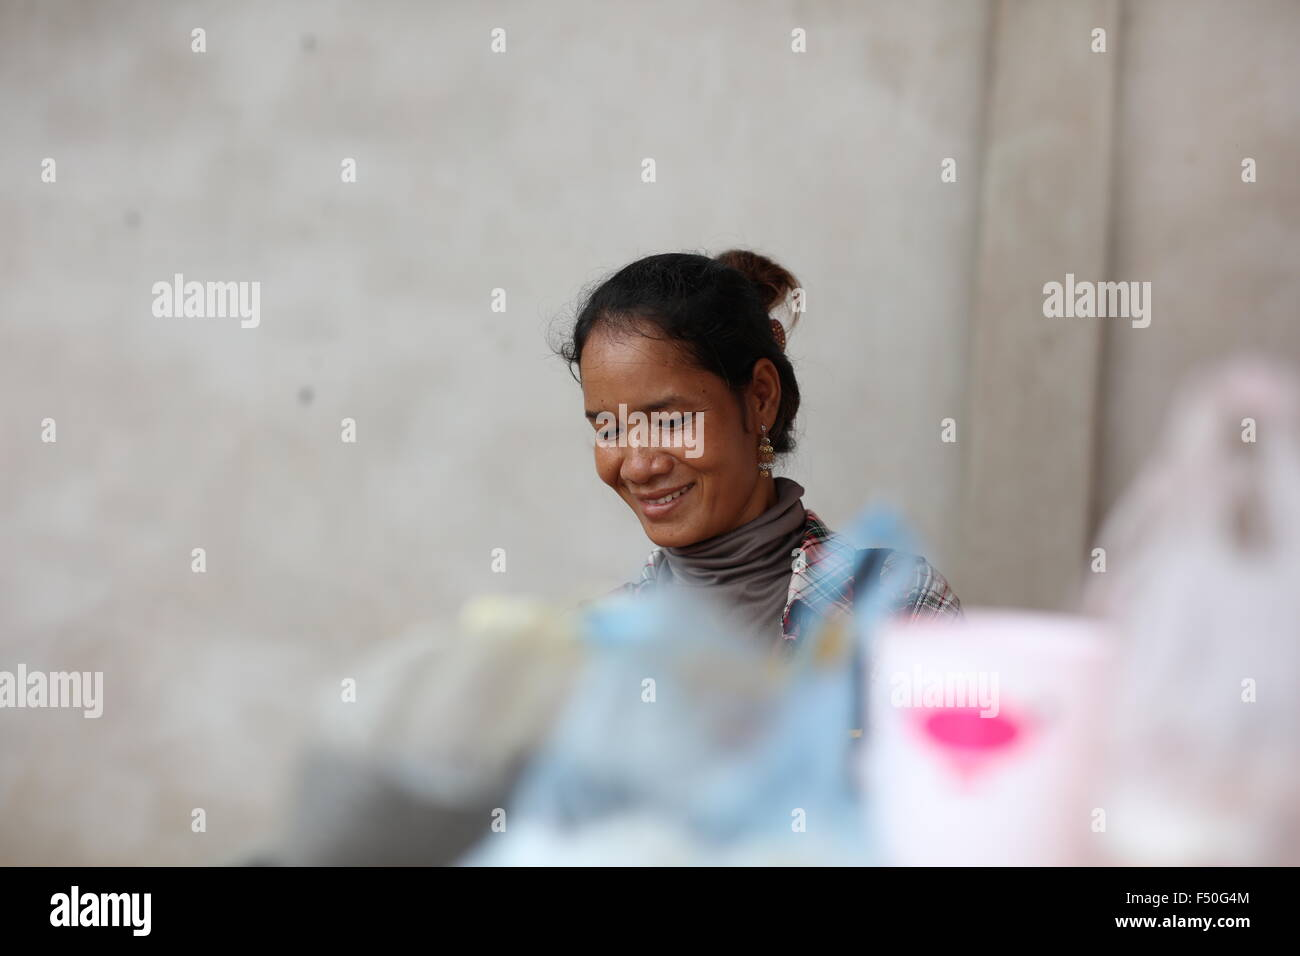 Portrait of Asian woman smiling - Stock Image